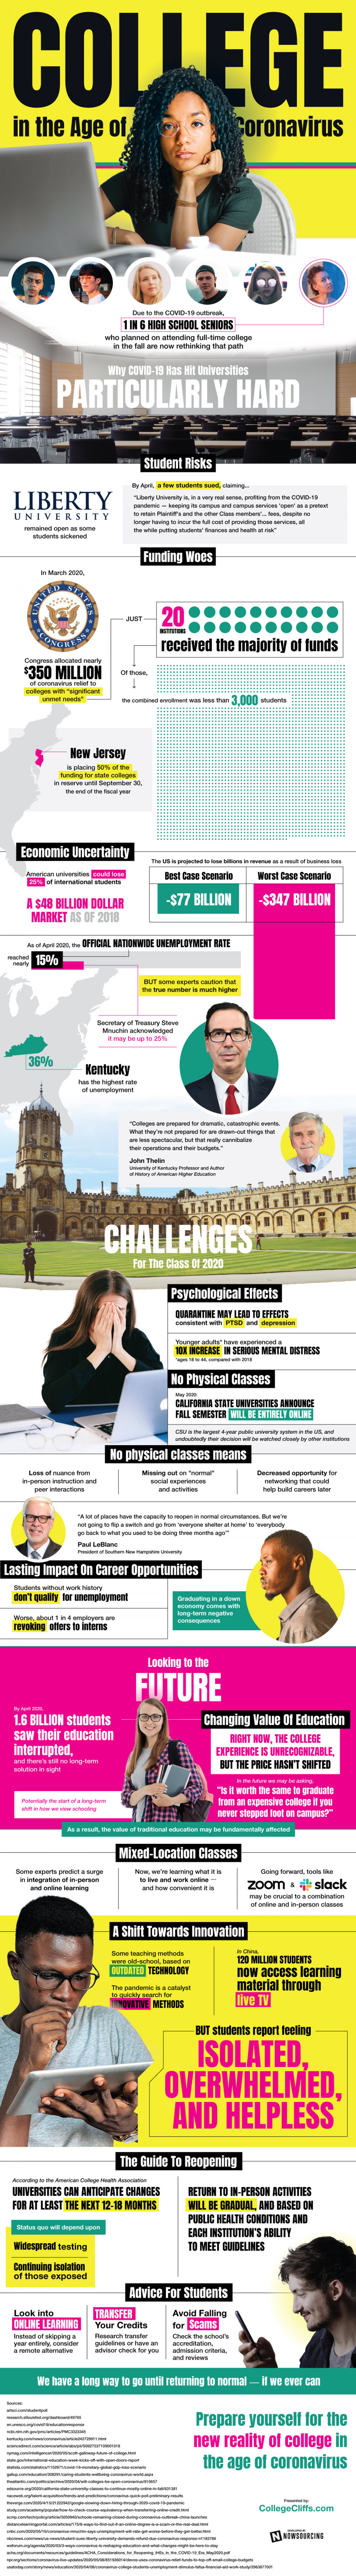 The Impact of COVID-19 on Students and Colleges Infographic